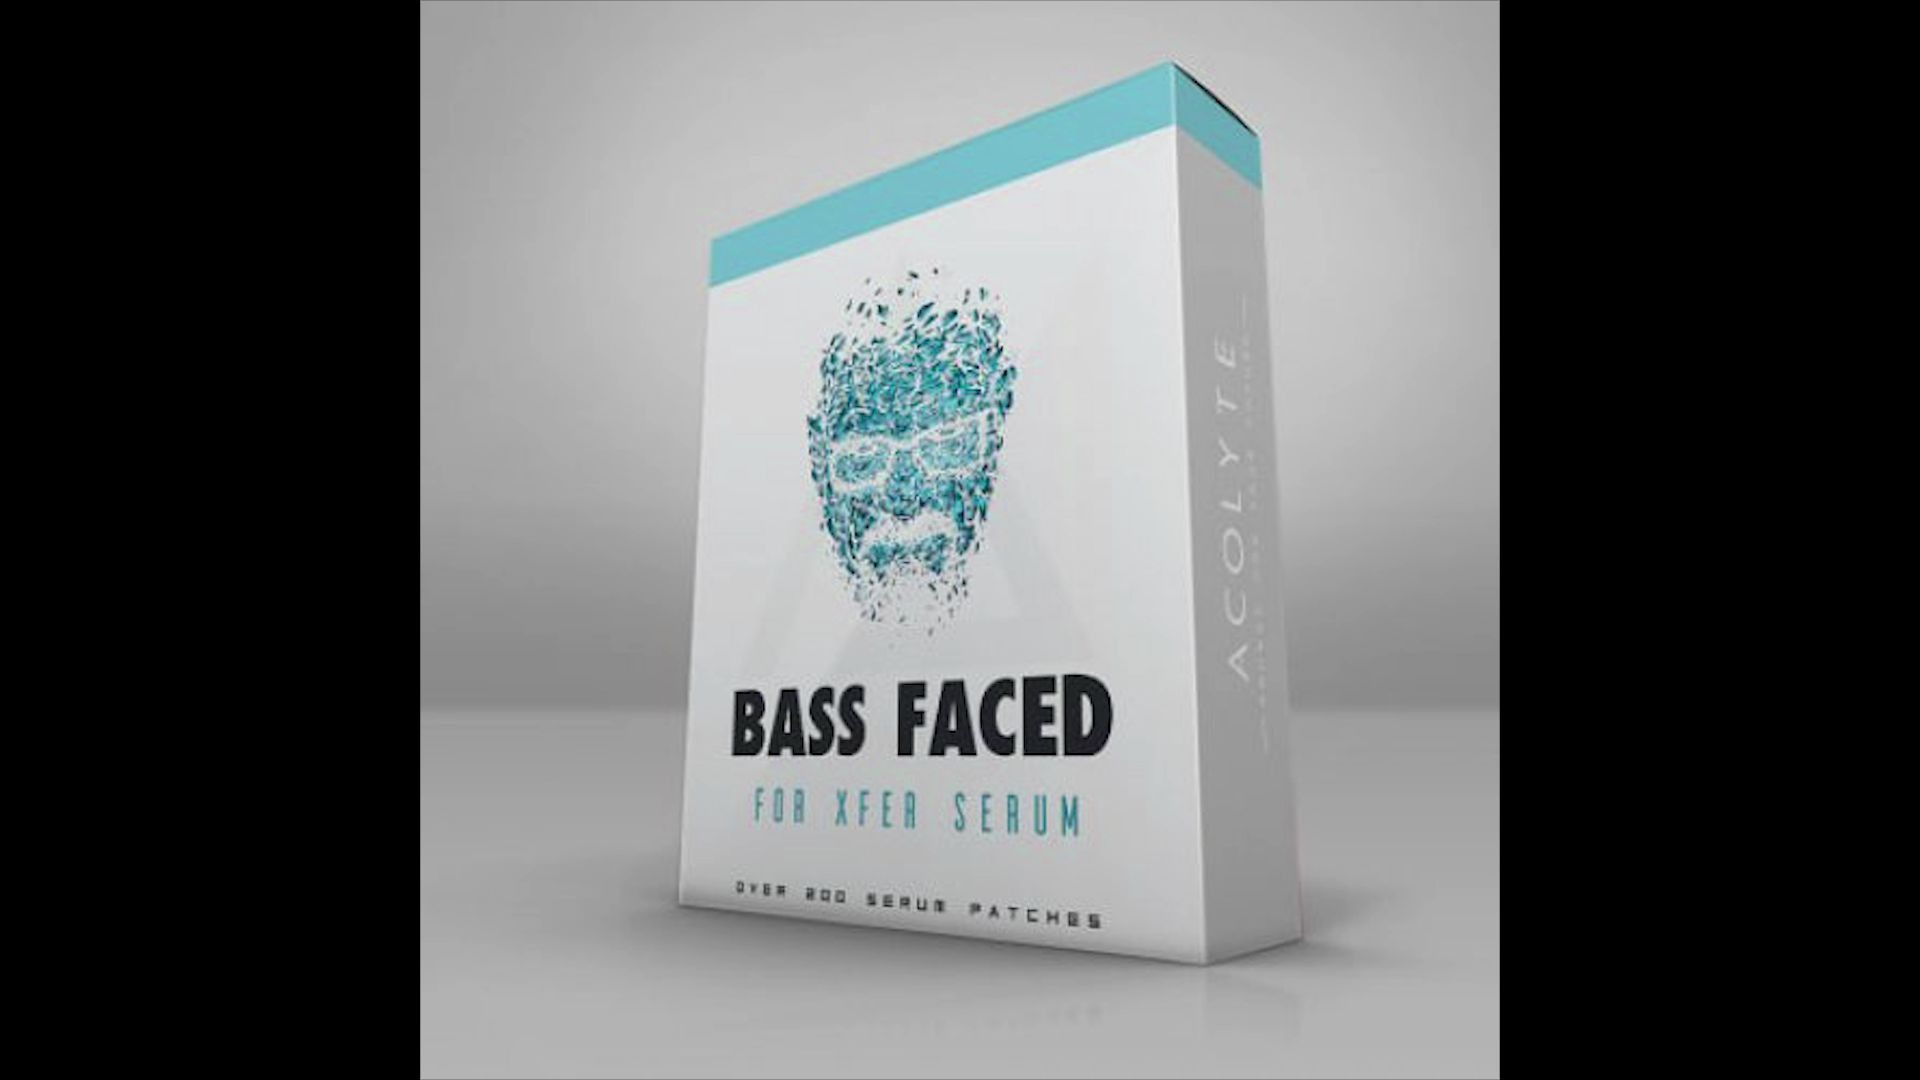 【Acolyte - Bass Faced for Xfer Serum】分享一个Drum&Bass风格的Serum预设包